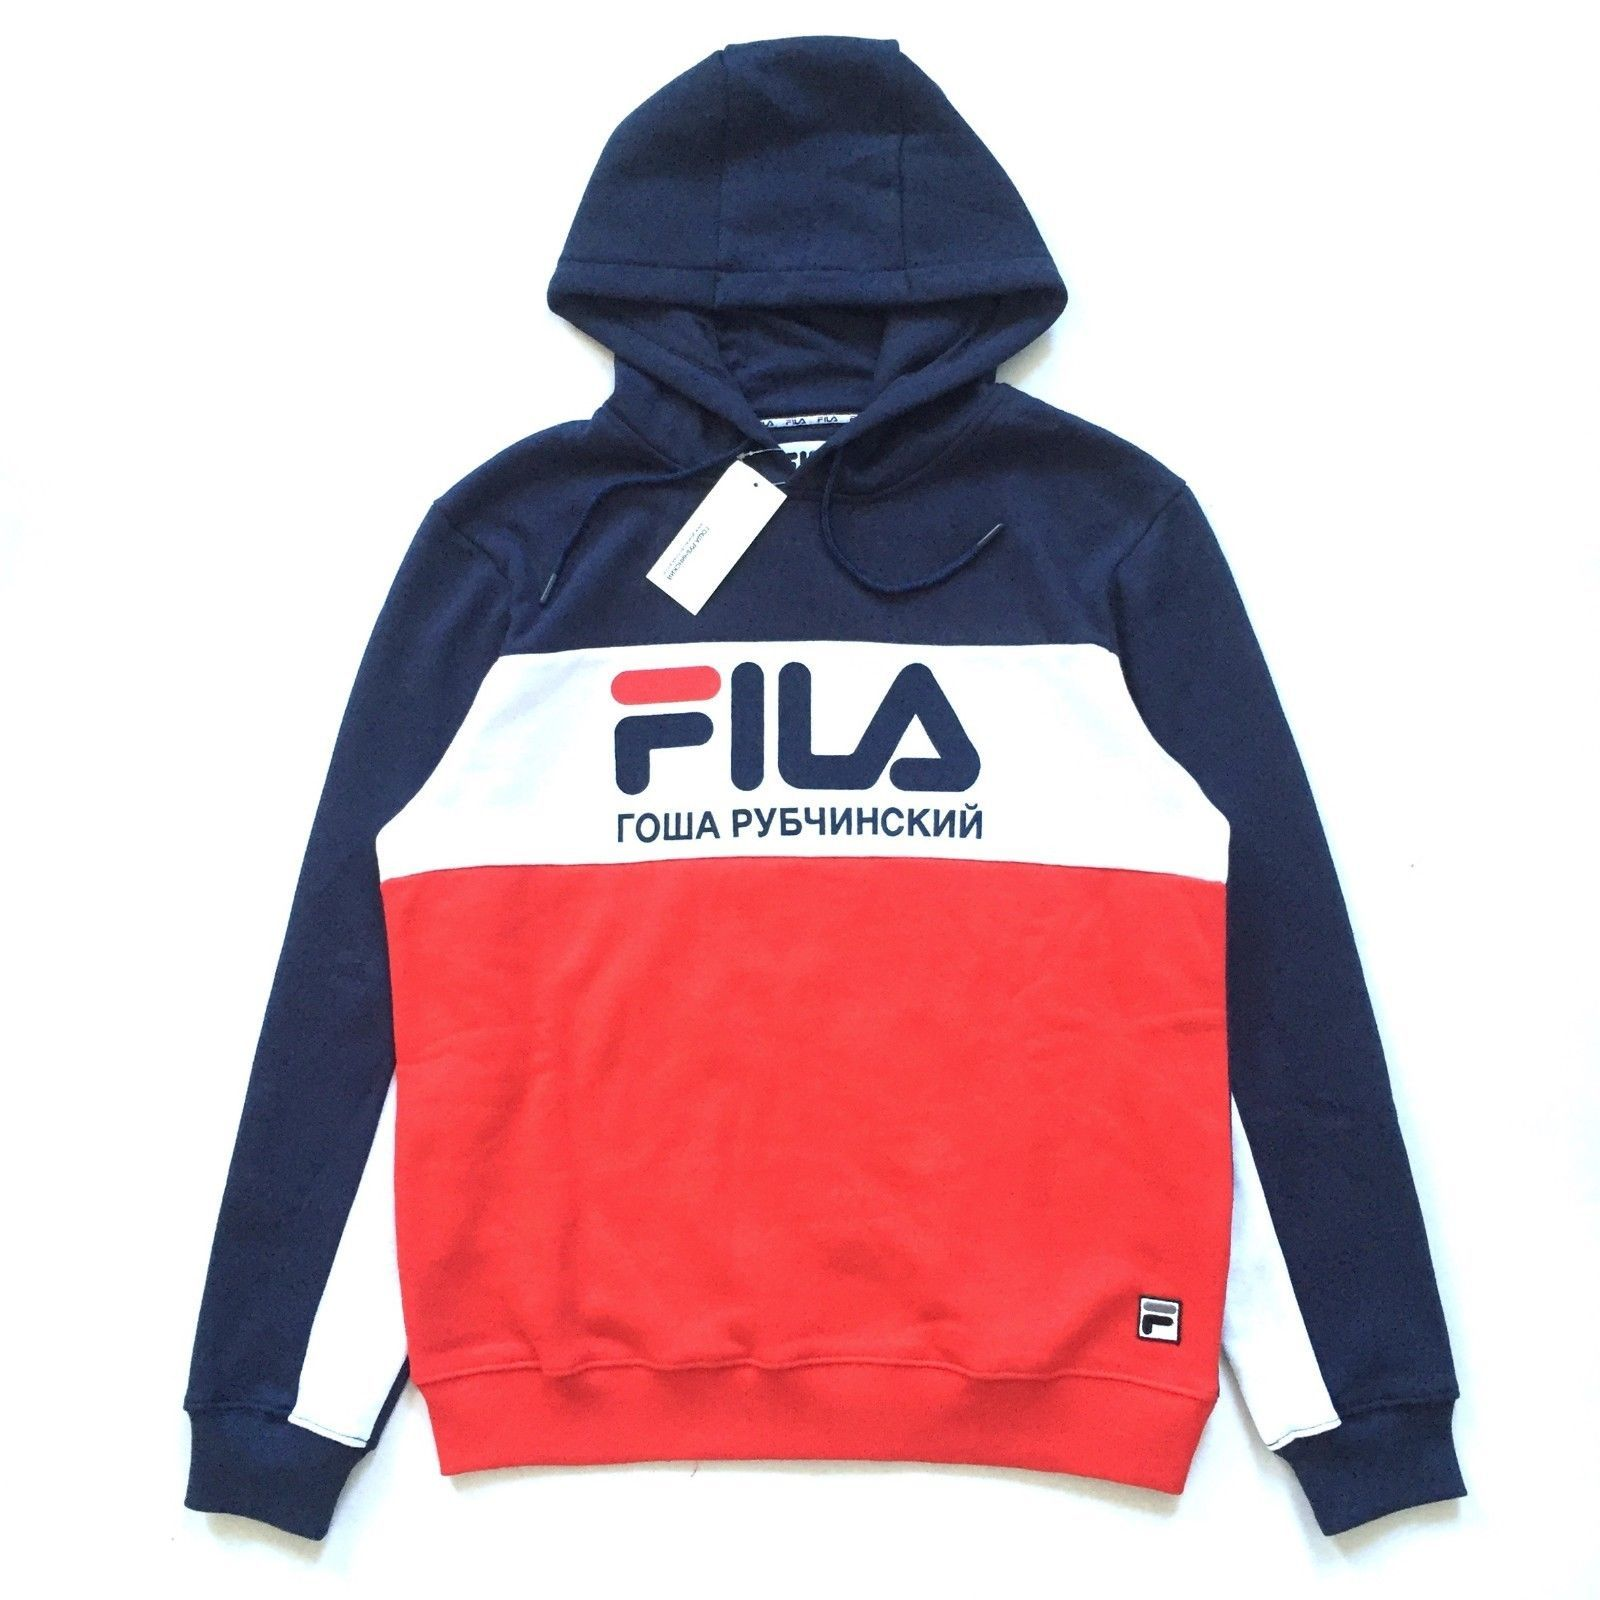 fila shoes boys 5t hoodies jackets for men